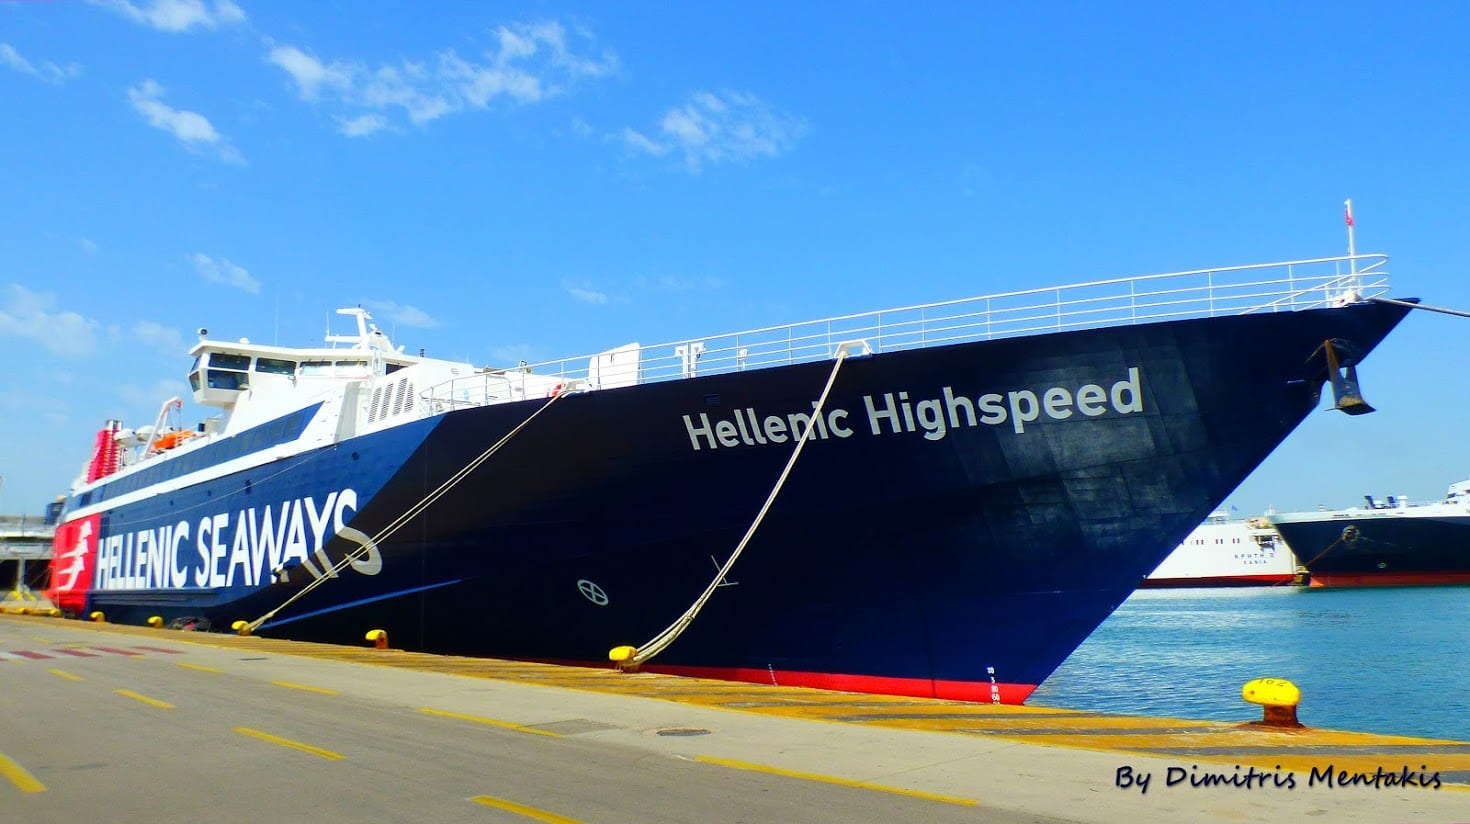 Hellenic Seaways Highspeed Ferry